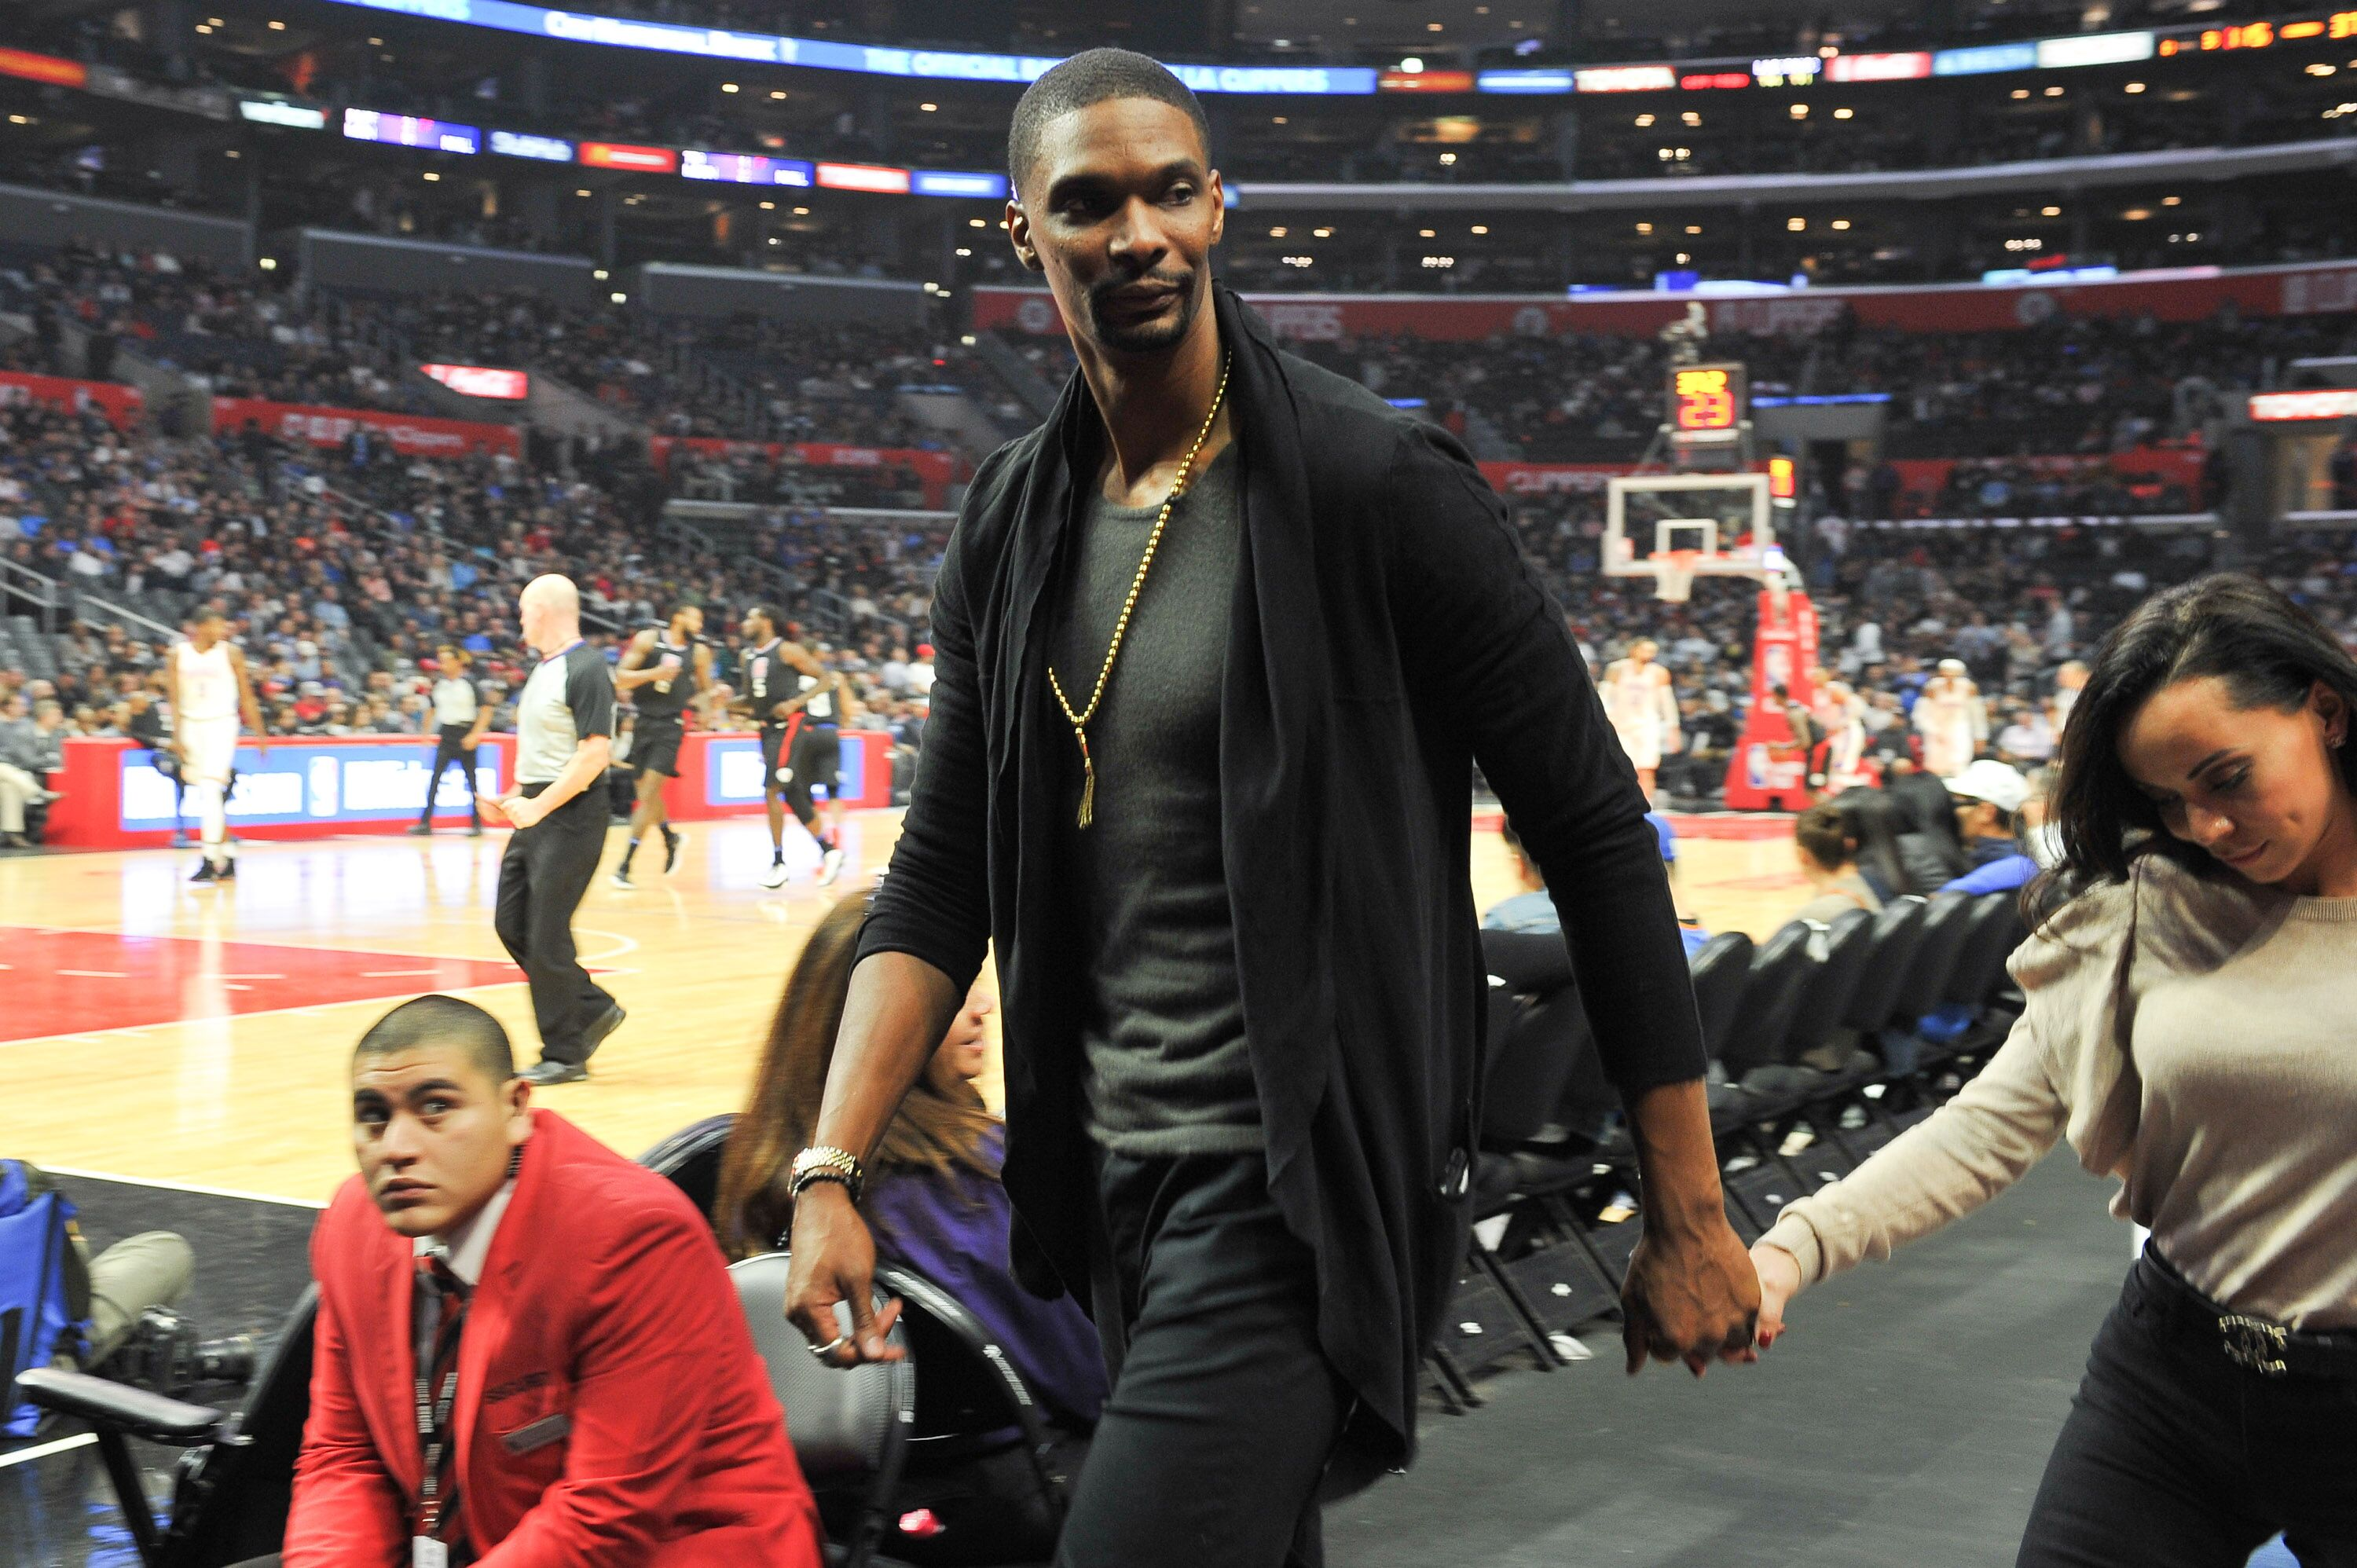 901384290-celebrities-at-the-los-angeles-clippers-game.jpg